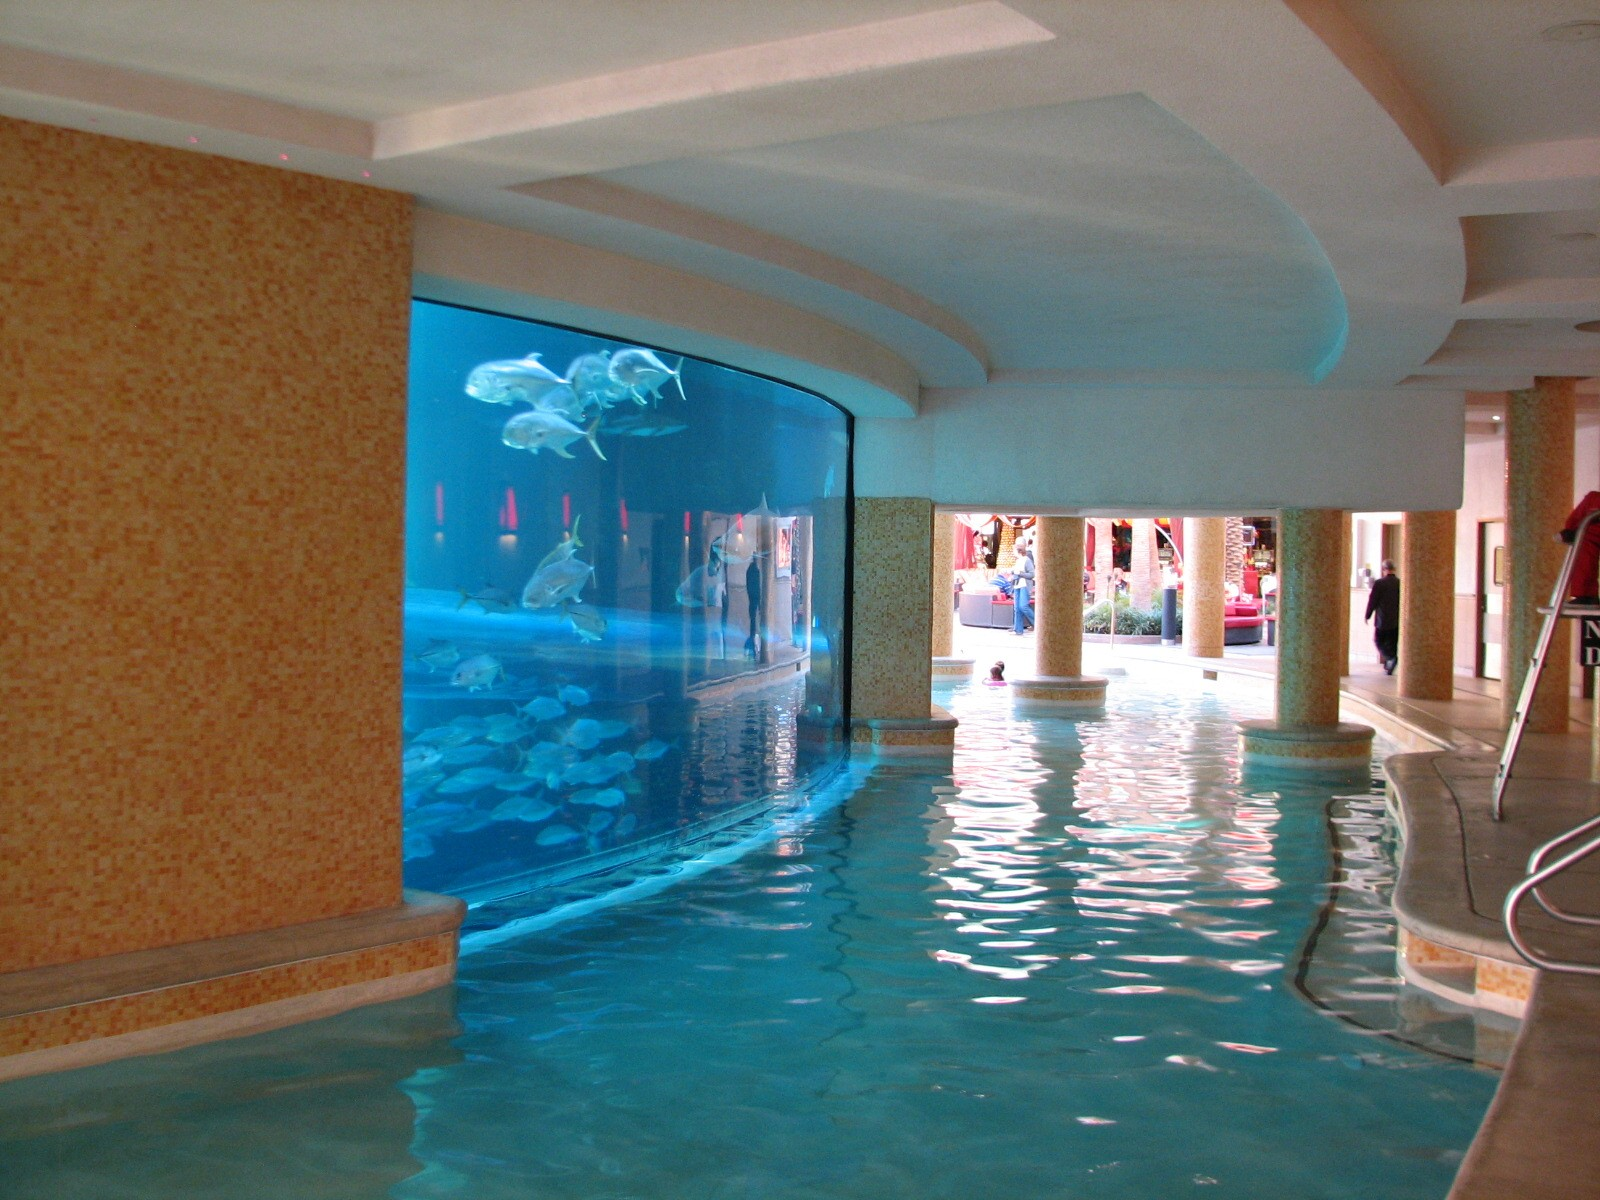 swimming pool las vegas sua golden nugget morning time - Cool Indoor Pools With Fish